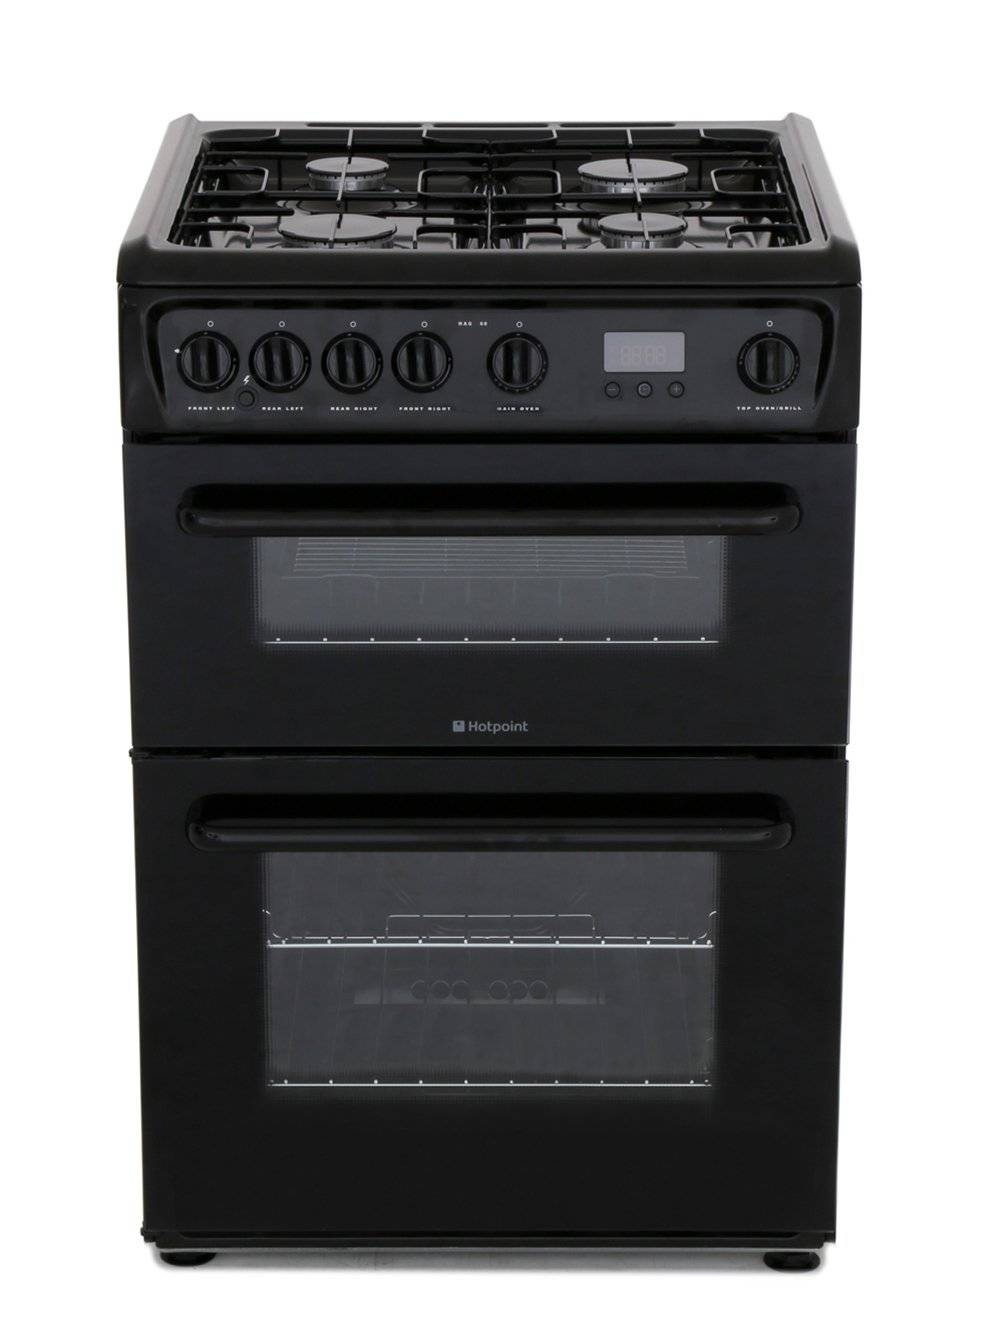 Hotpoint Gas Cooker with Double Oven - Black - A Rated - HAG60K